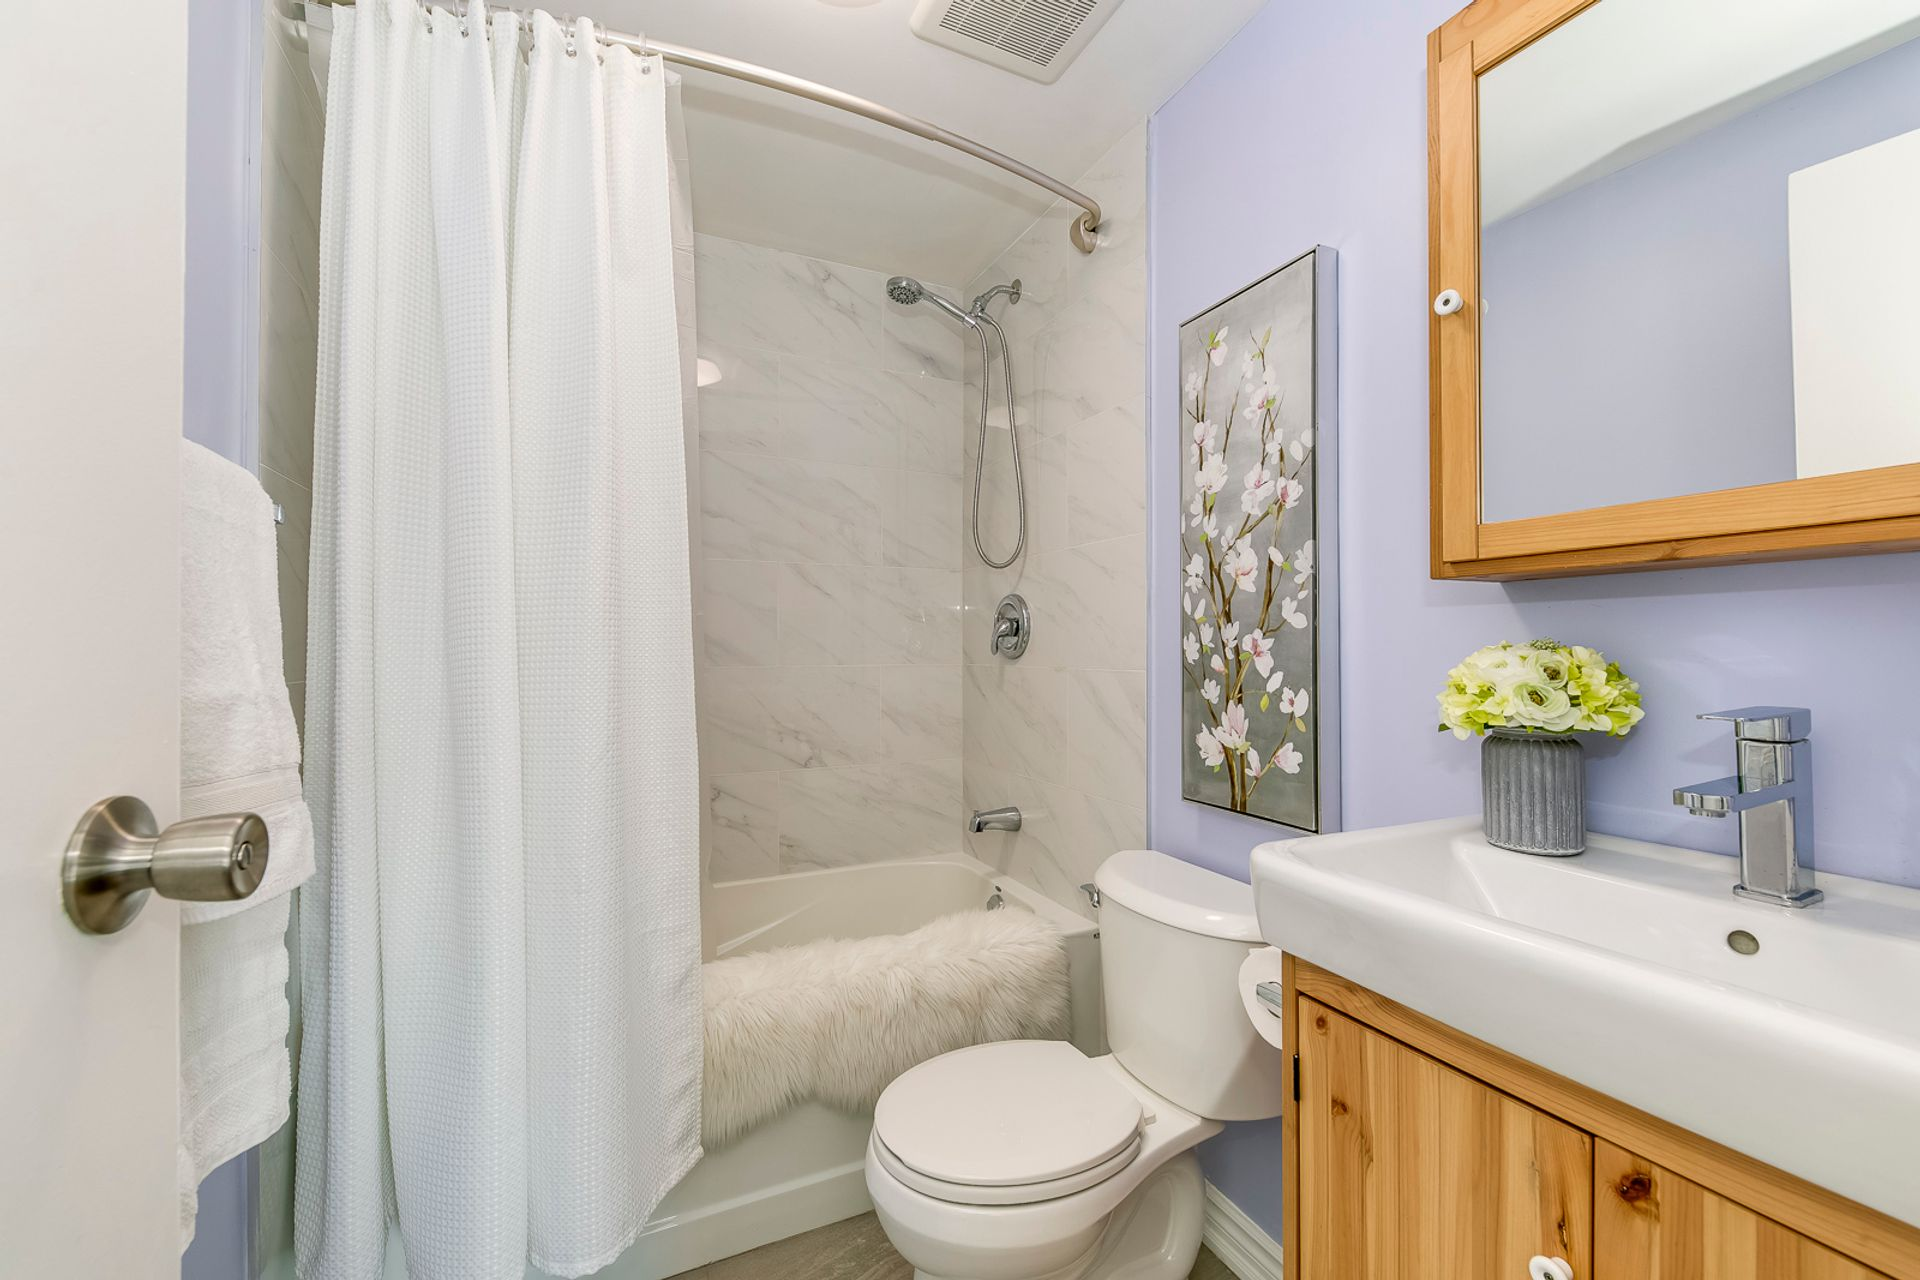 Primary Ensuite - 6278 Lavery Crt, Mississauga - Elite3 & Team at 6278 Lavery Court, Meadowvale, Mississauga